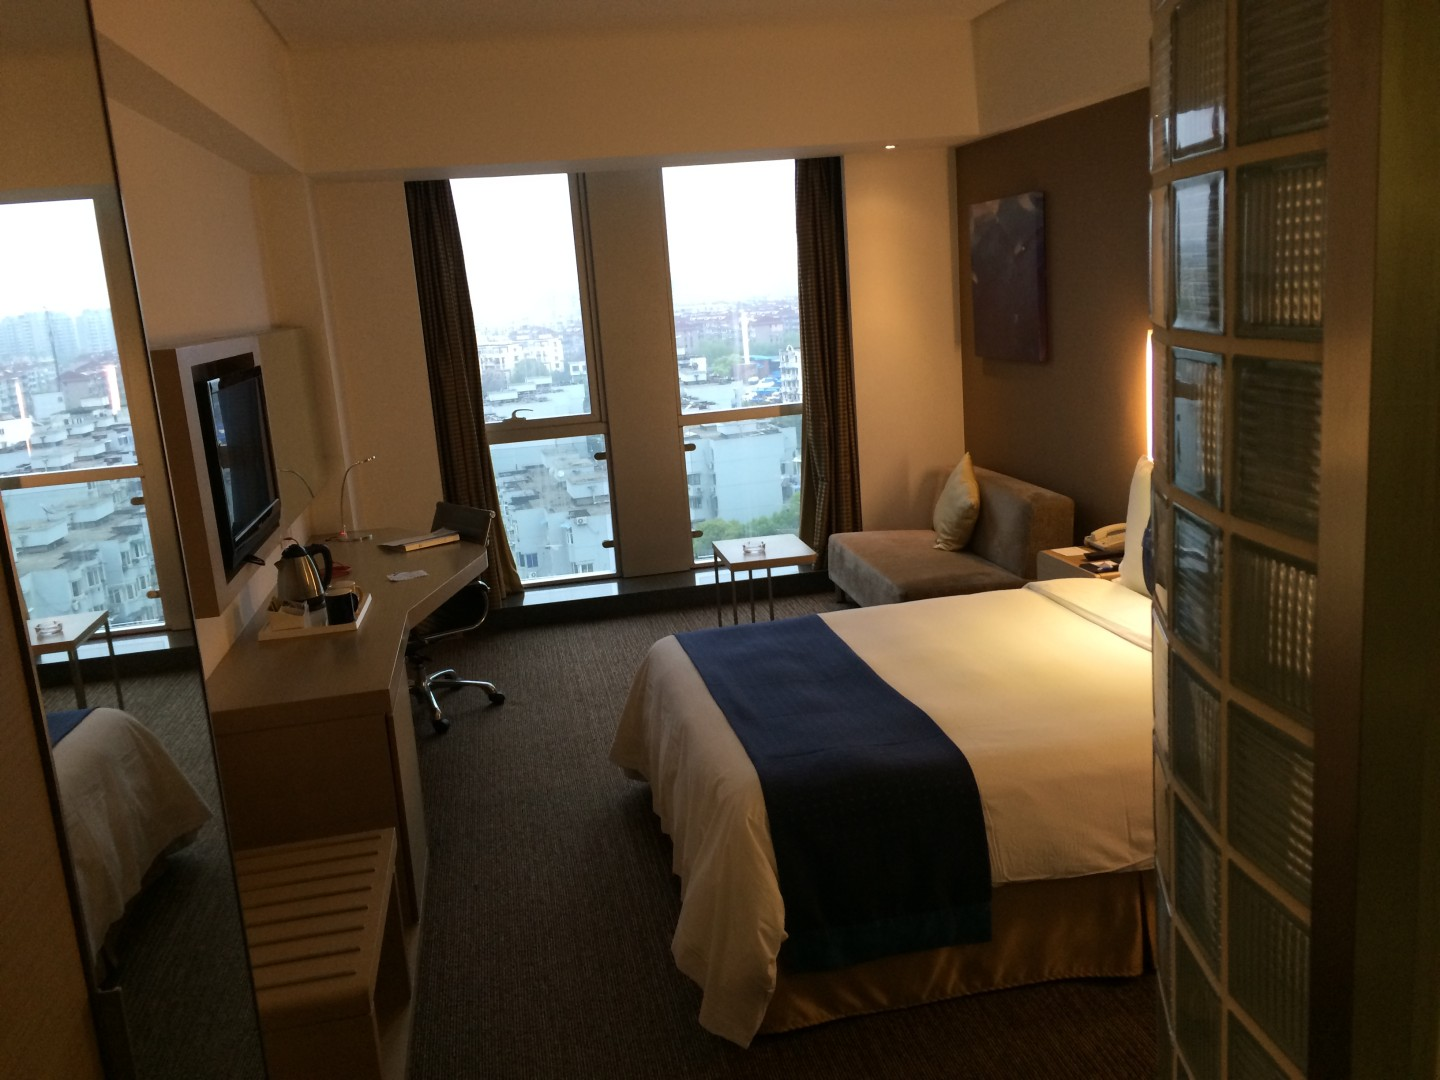 This Holiday Inn Express in Shanghai was still nice enough for me.